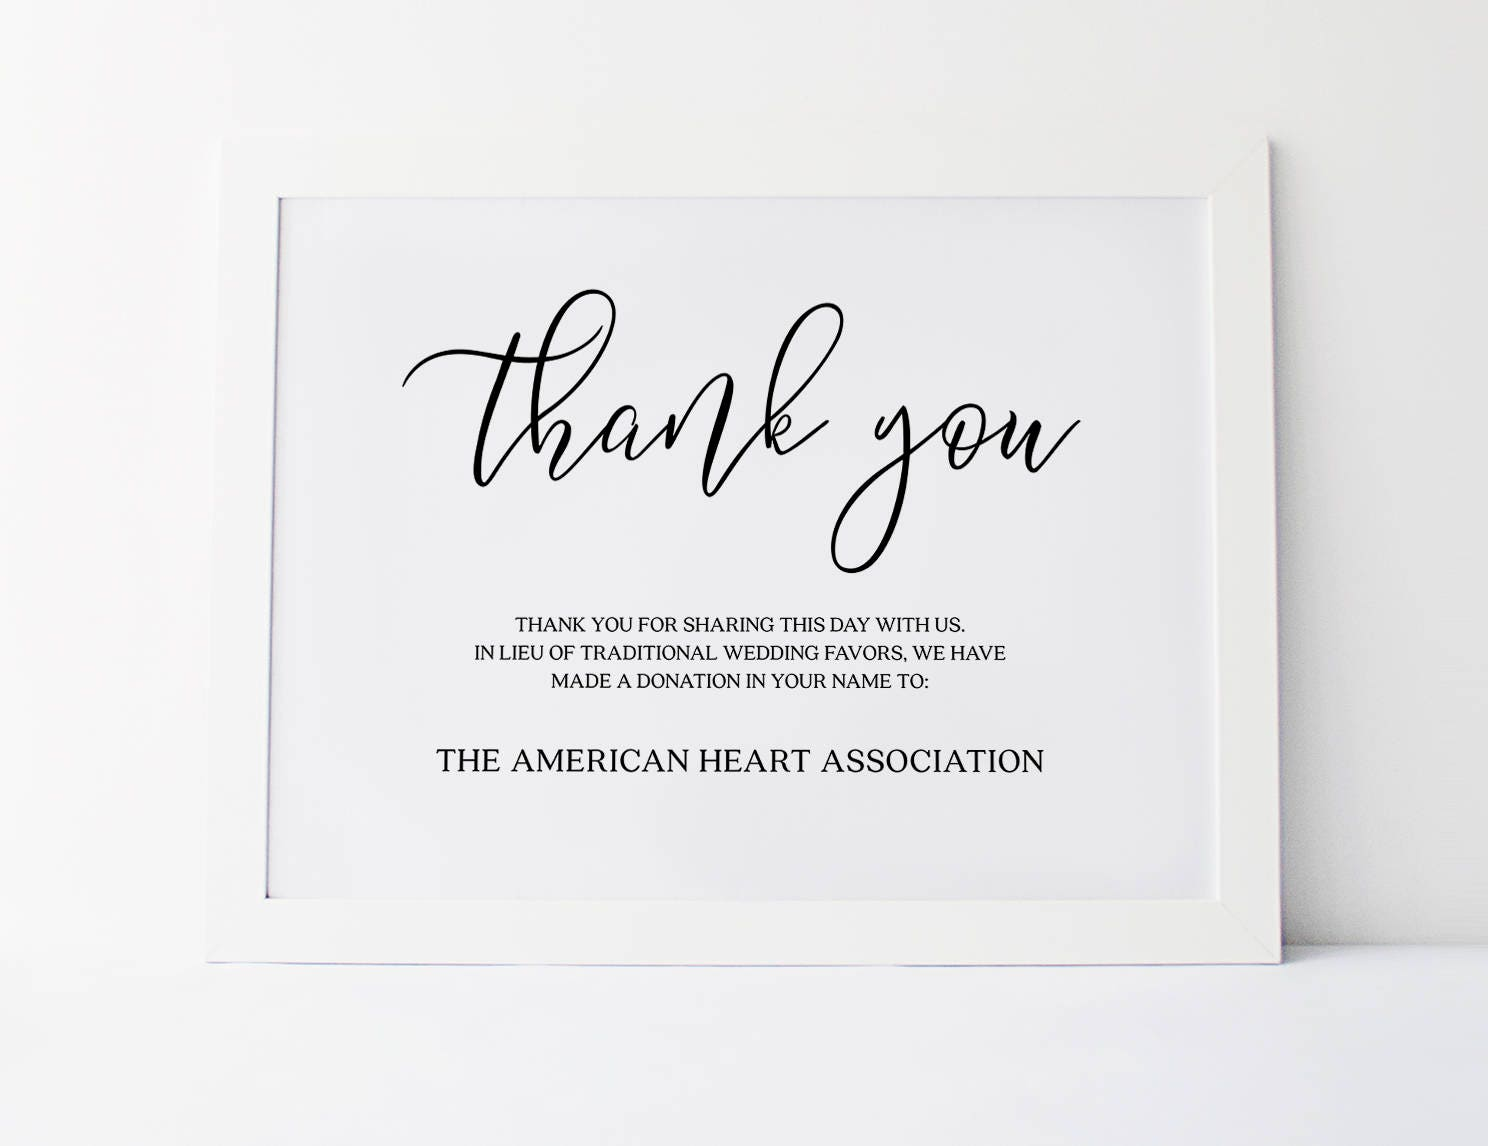 Wedding Favors Sign In Lieu Of Favors Sign Wedding Donation